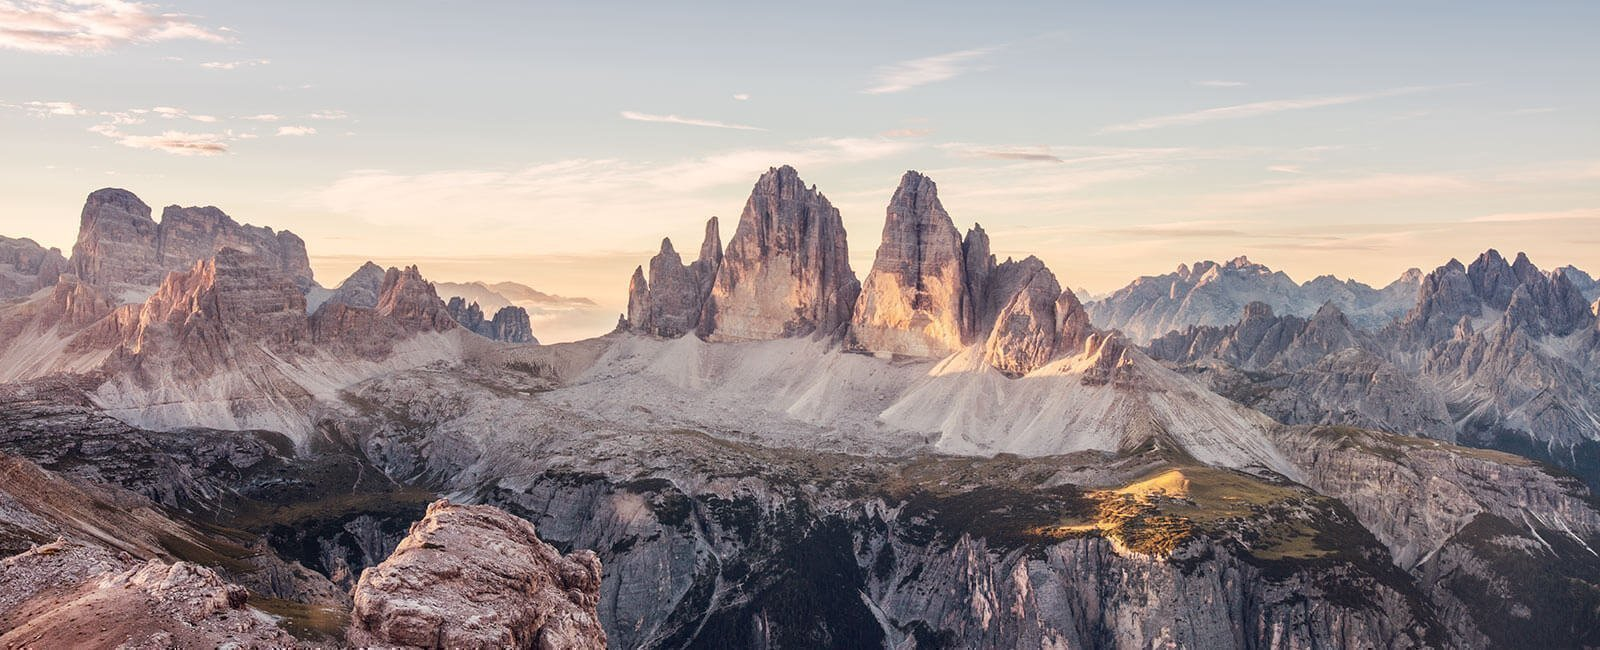 The Dolomites - A UNESCO World Heritage Site